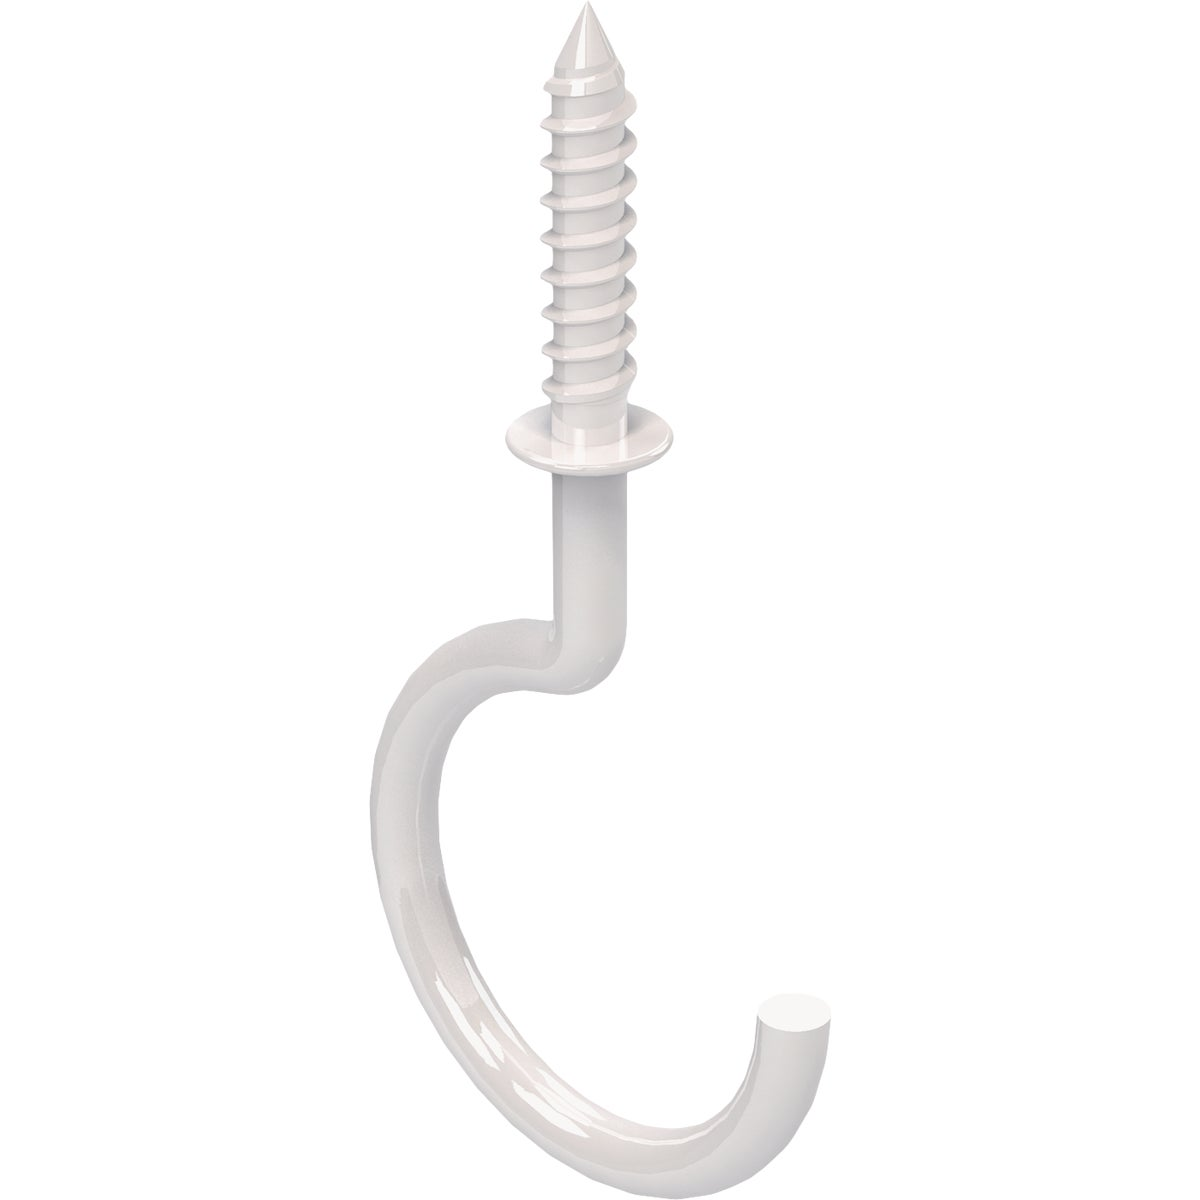 WHITE VC OUTDOOR HOOK - N274951 by National Mfg Co